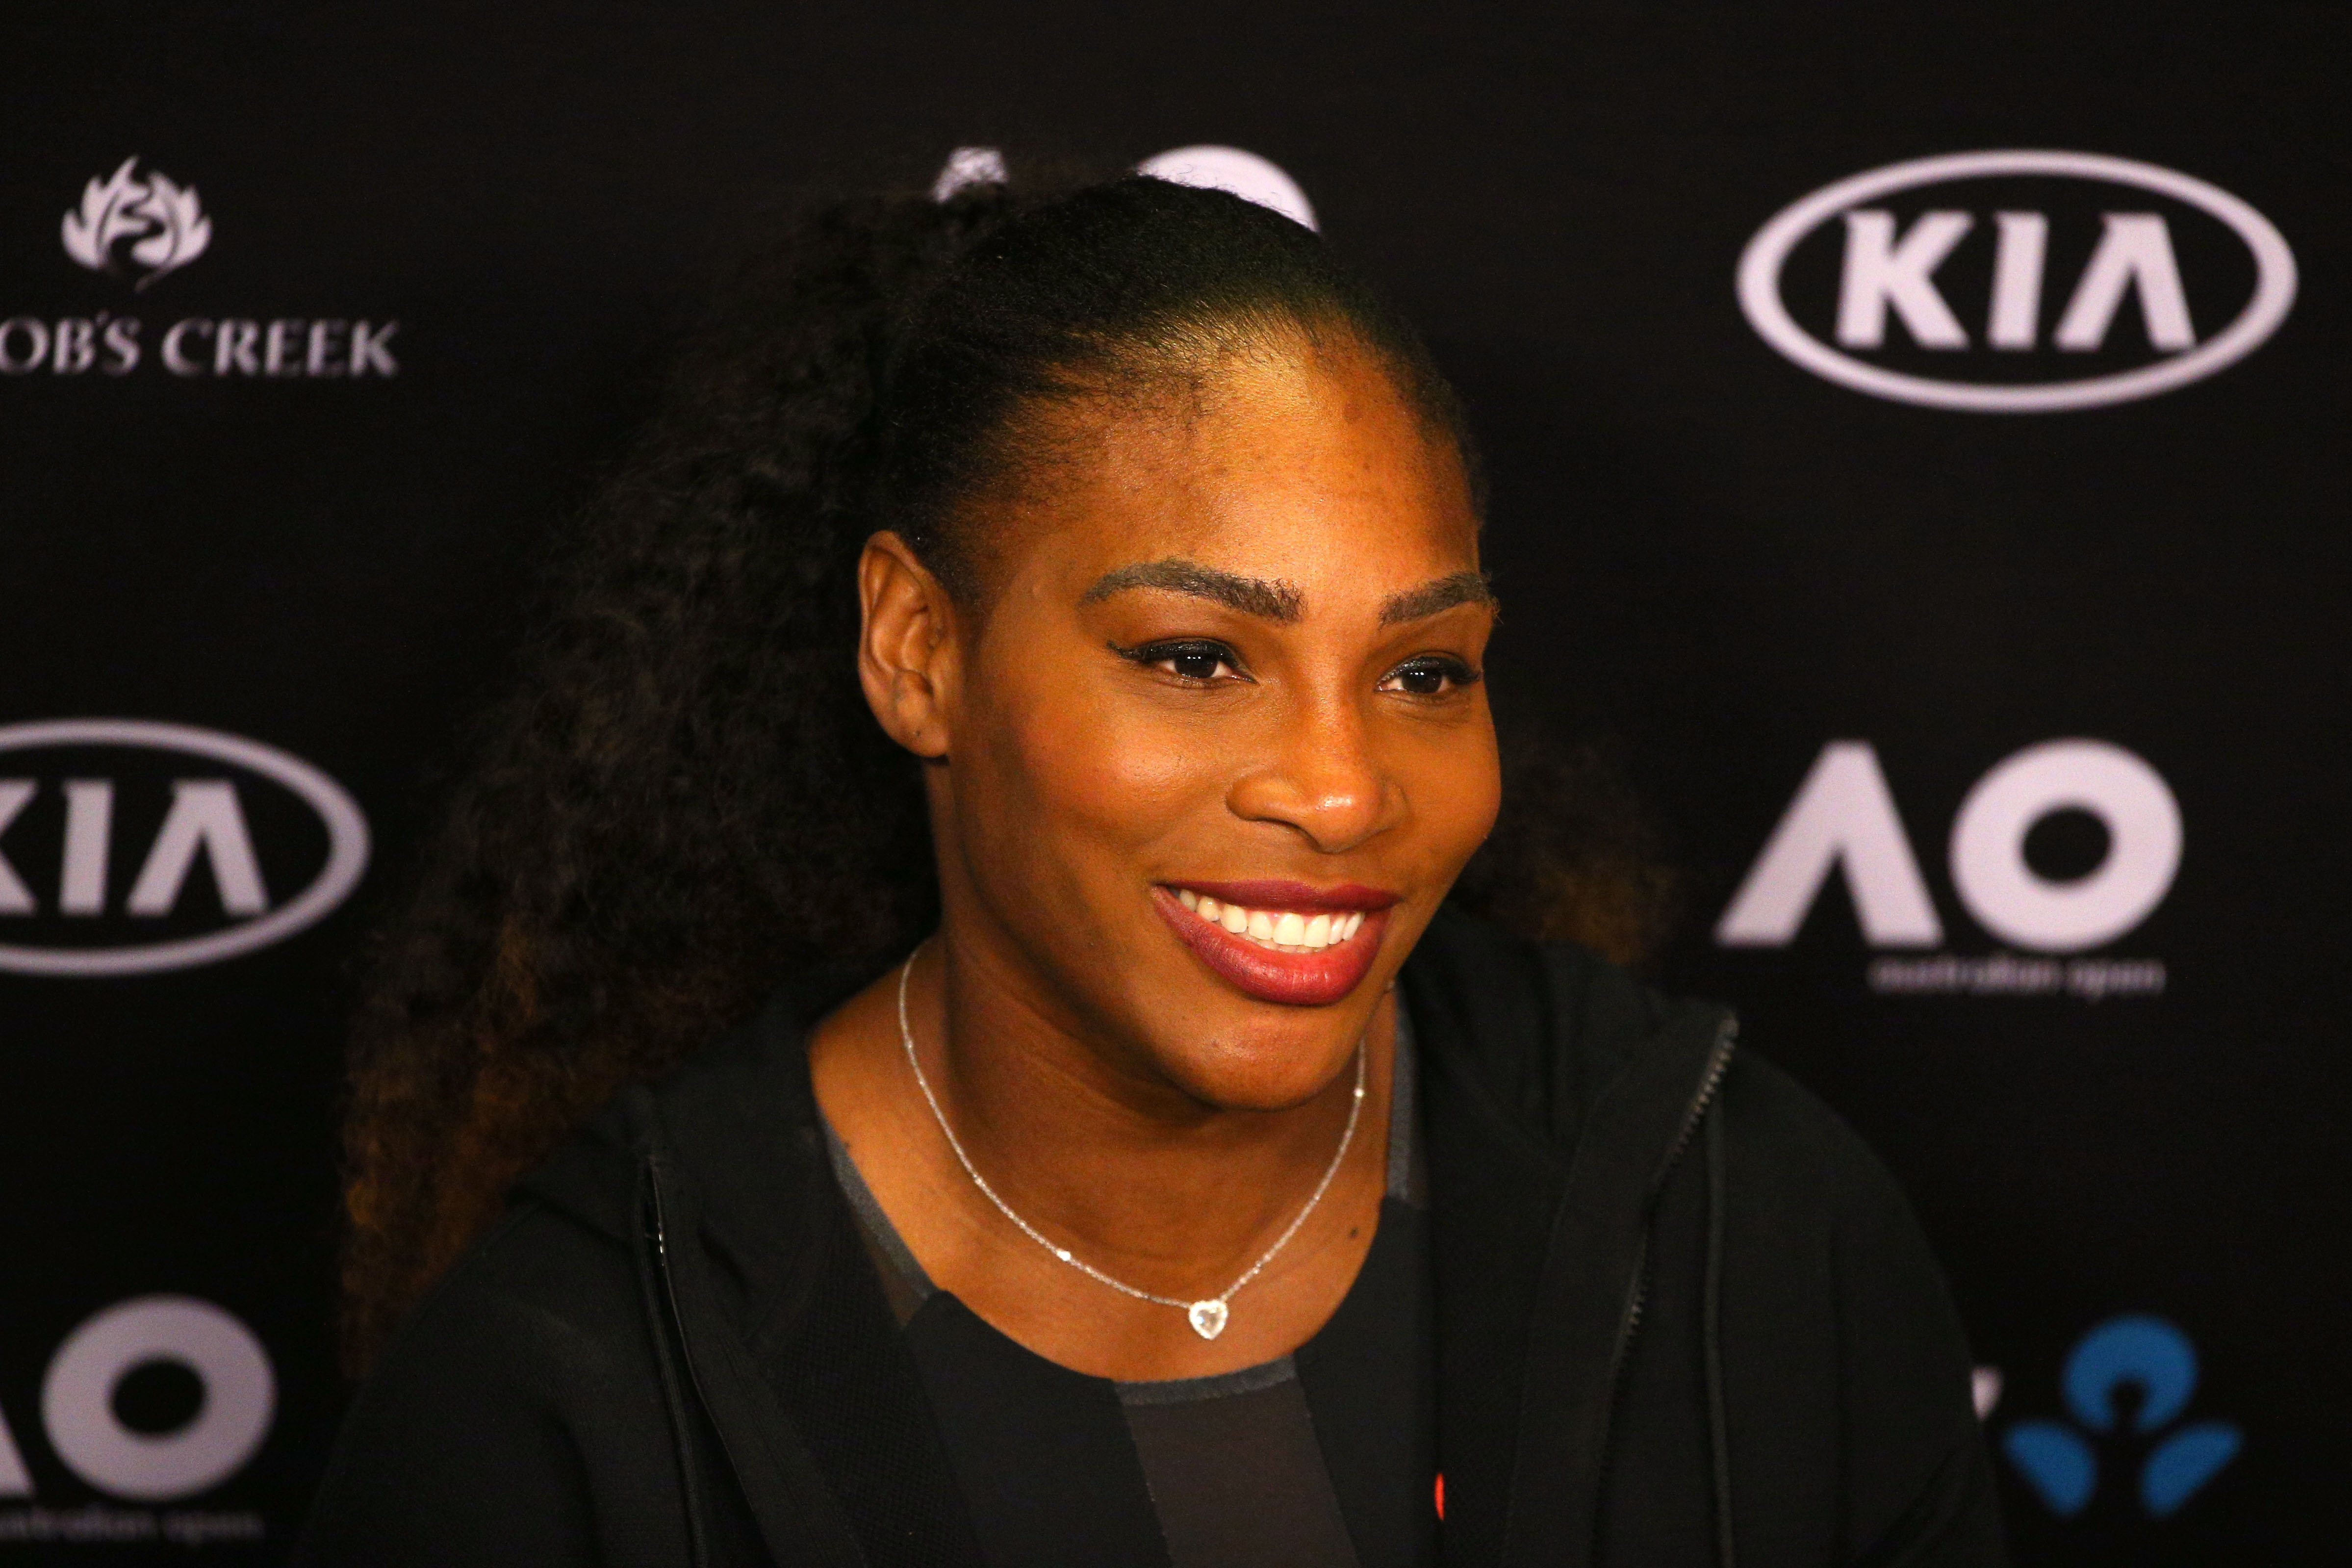 Serena Williams of the United States speaks to the media during a press conference after winning the Women's Singles Final against Venus Williams of the United States on day 13 of the 2017 Australian Open at Melbourne Park on January 28, 2017 in Melbourne